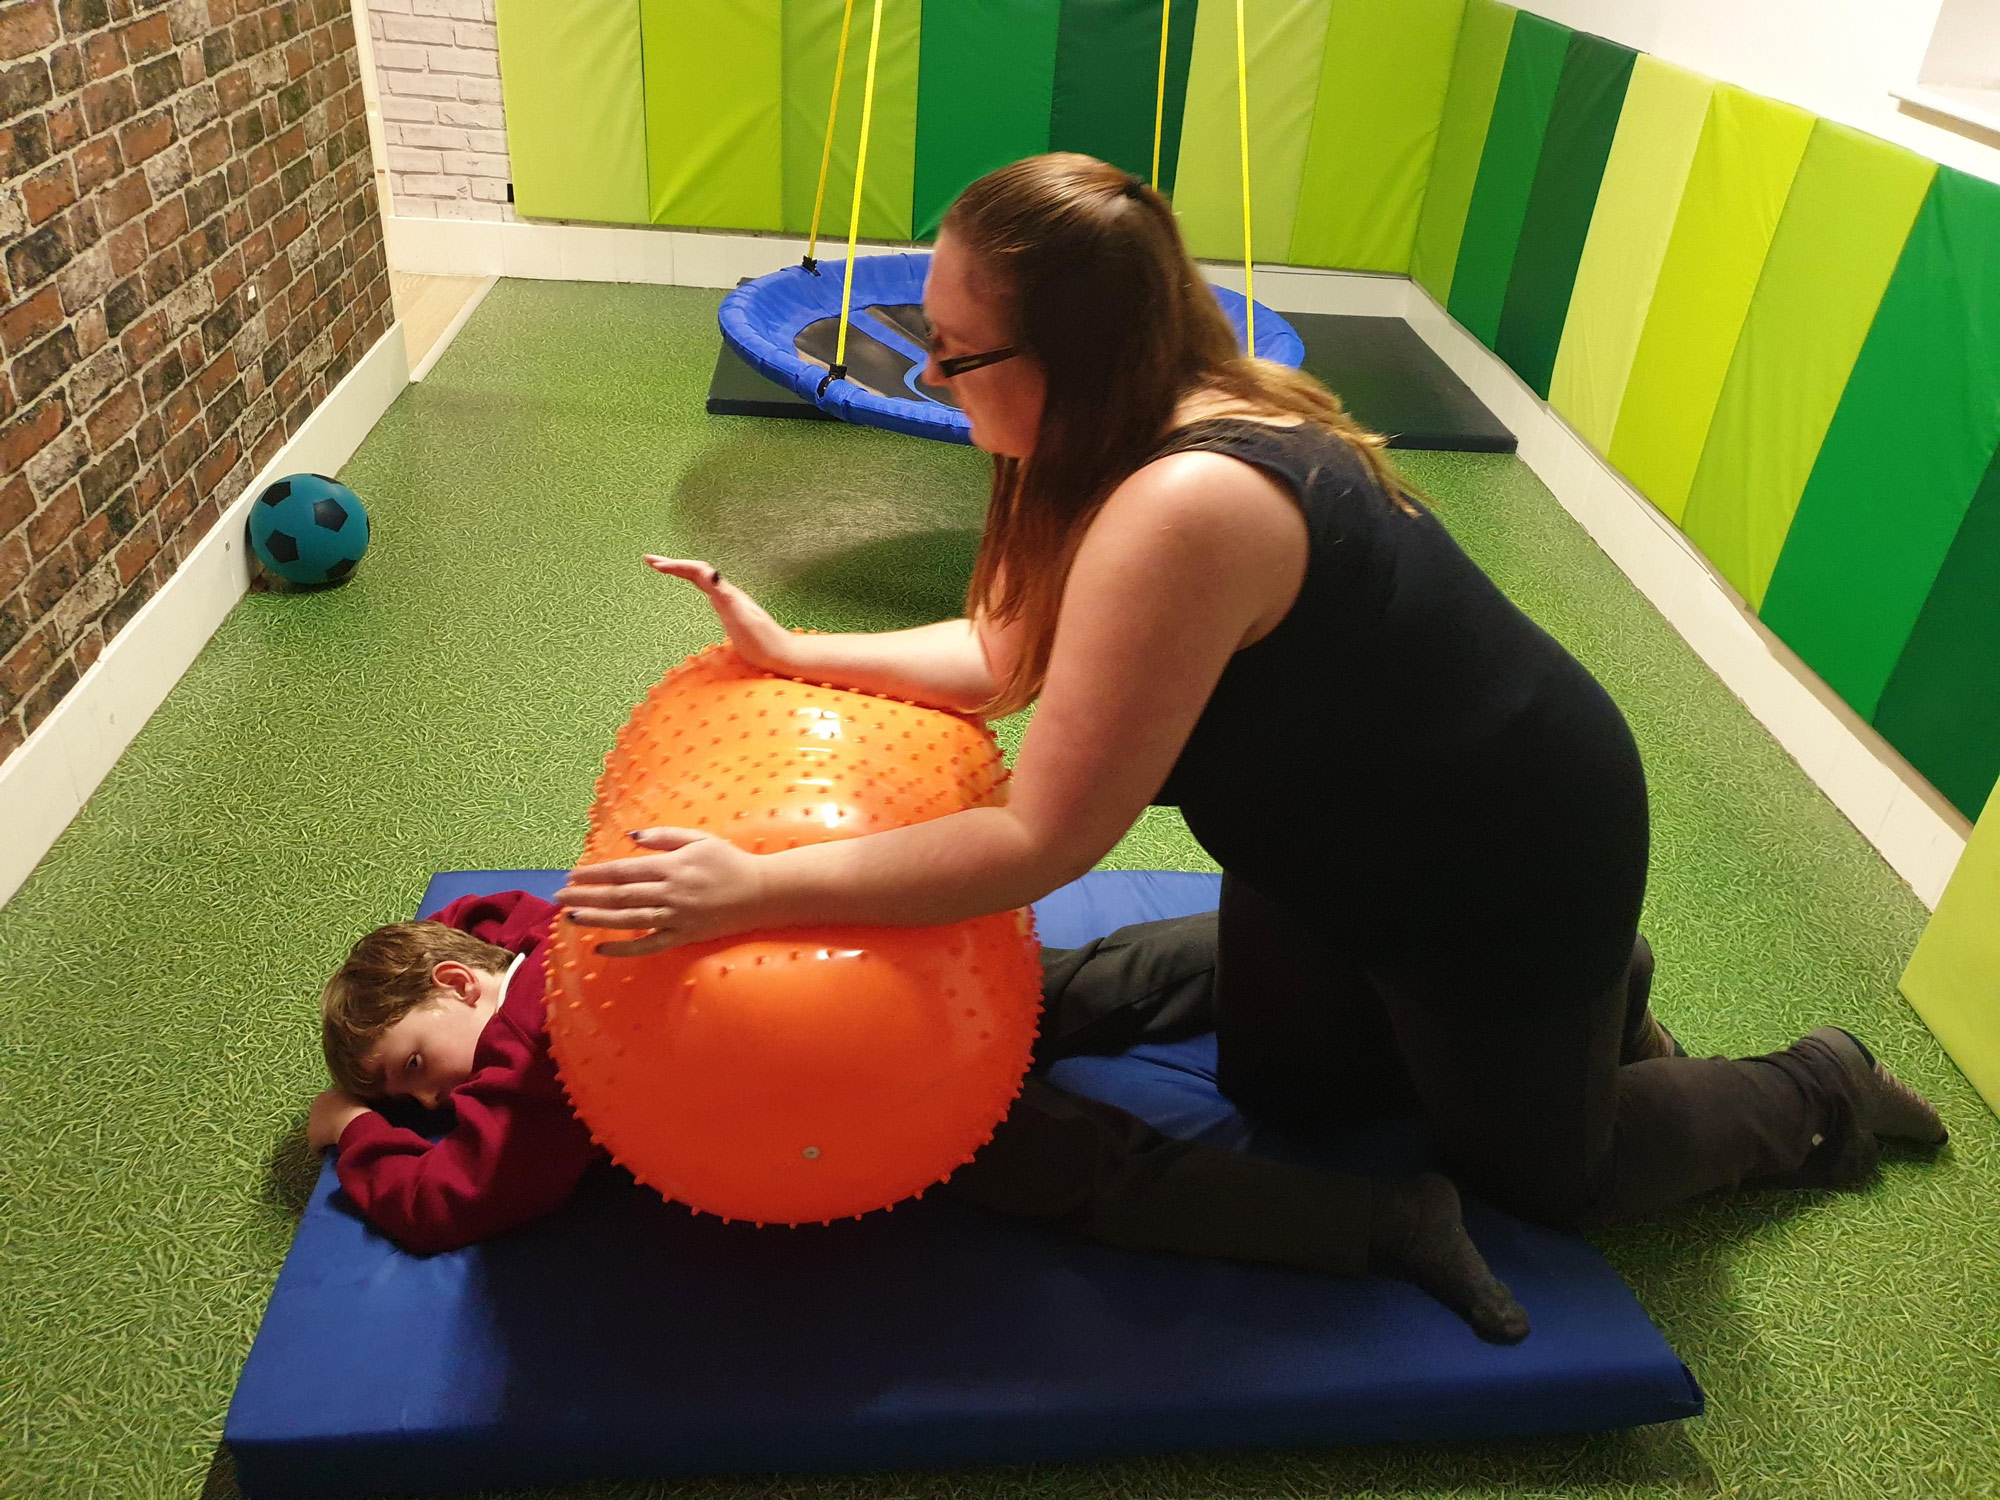 What does an Occupational Therapy Session involve?